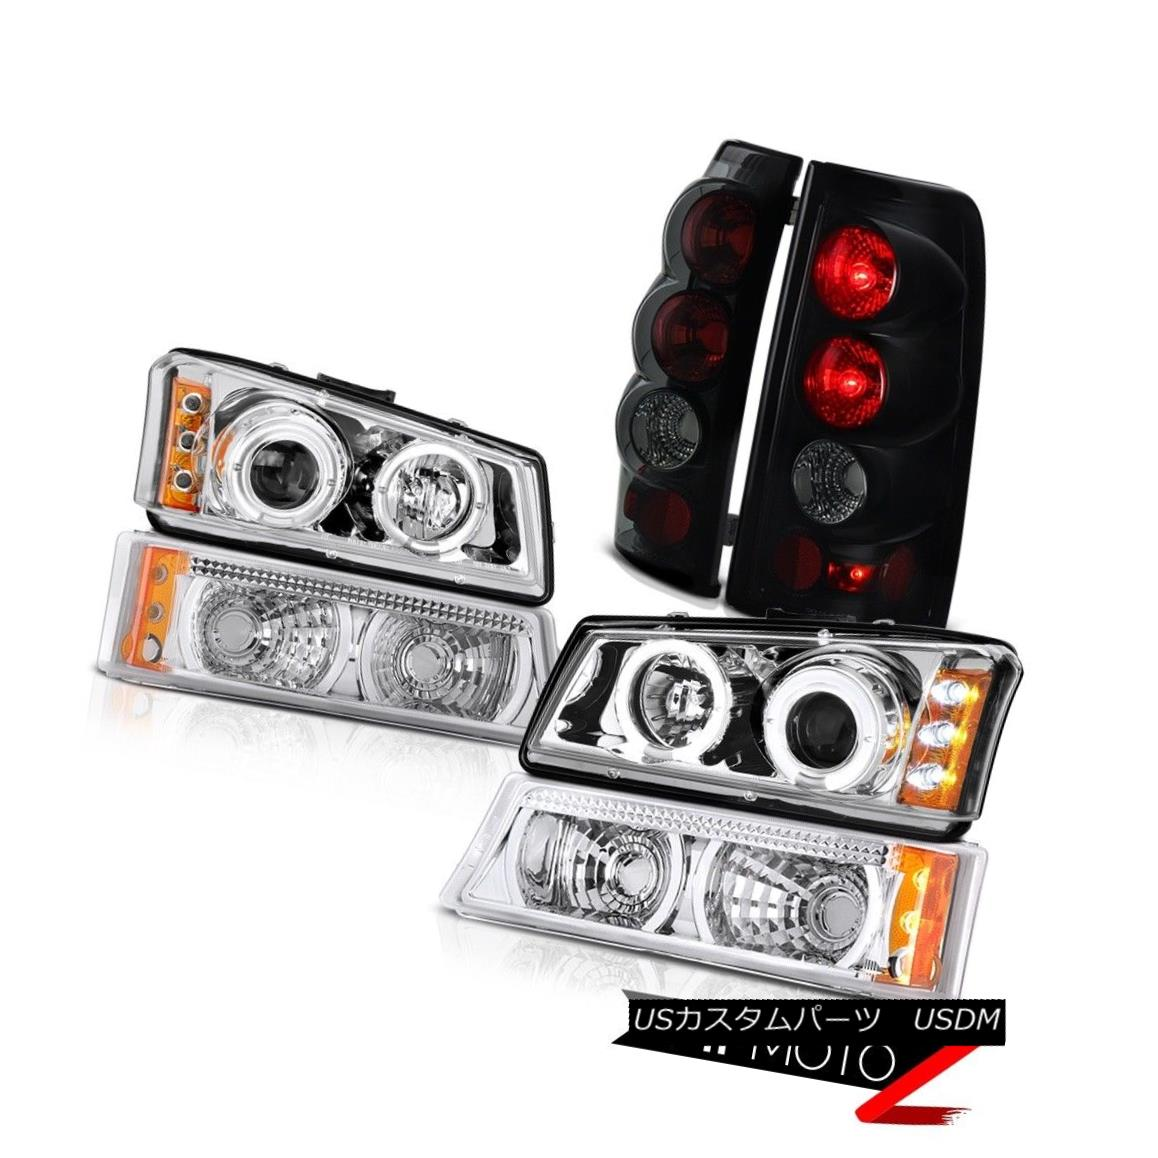 ヘッドライト 2003 2004 Silverado LTZ Chrome Halo LED Headlights Signal Smoke Black Tail Lamps 2003 2004 Silverado LTZ Chrome Halo LEDヘッドライト信号煙ブラックテールランプ